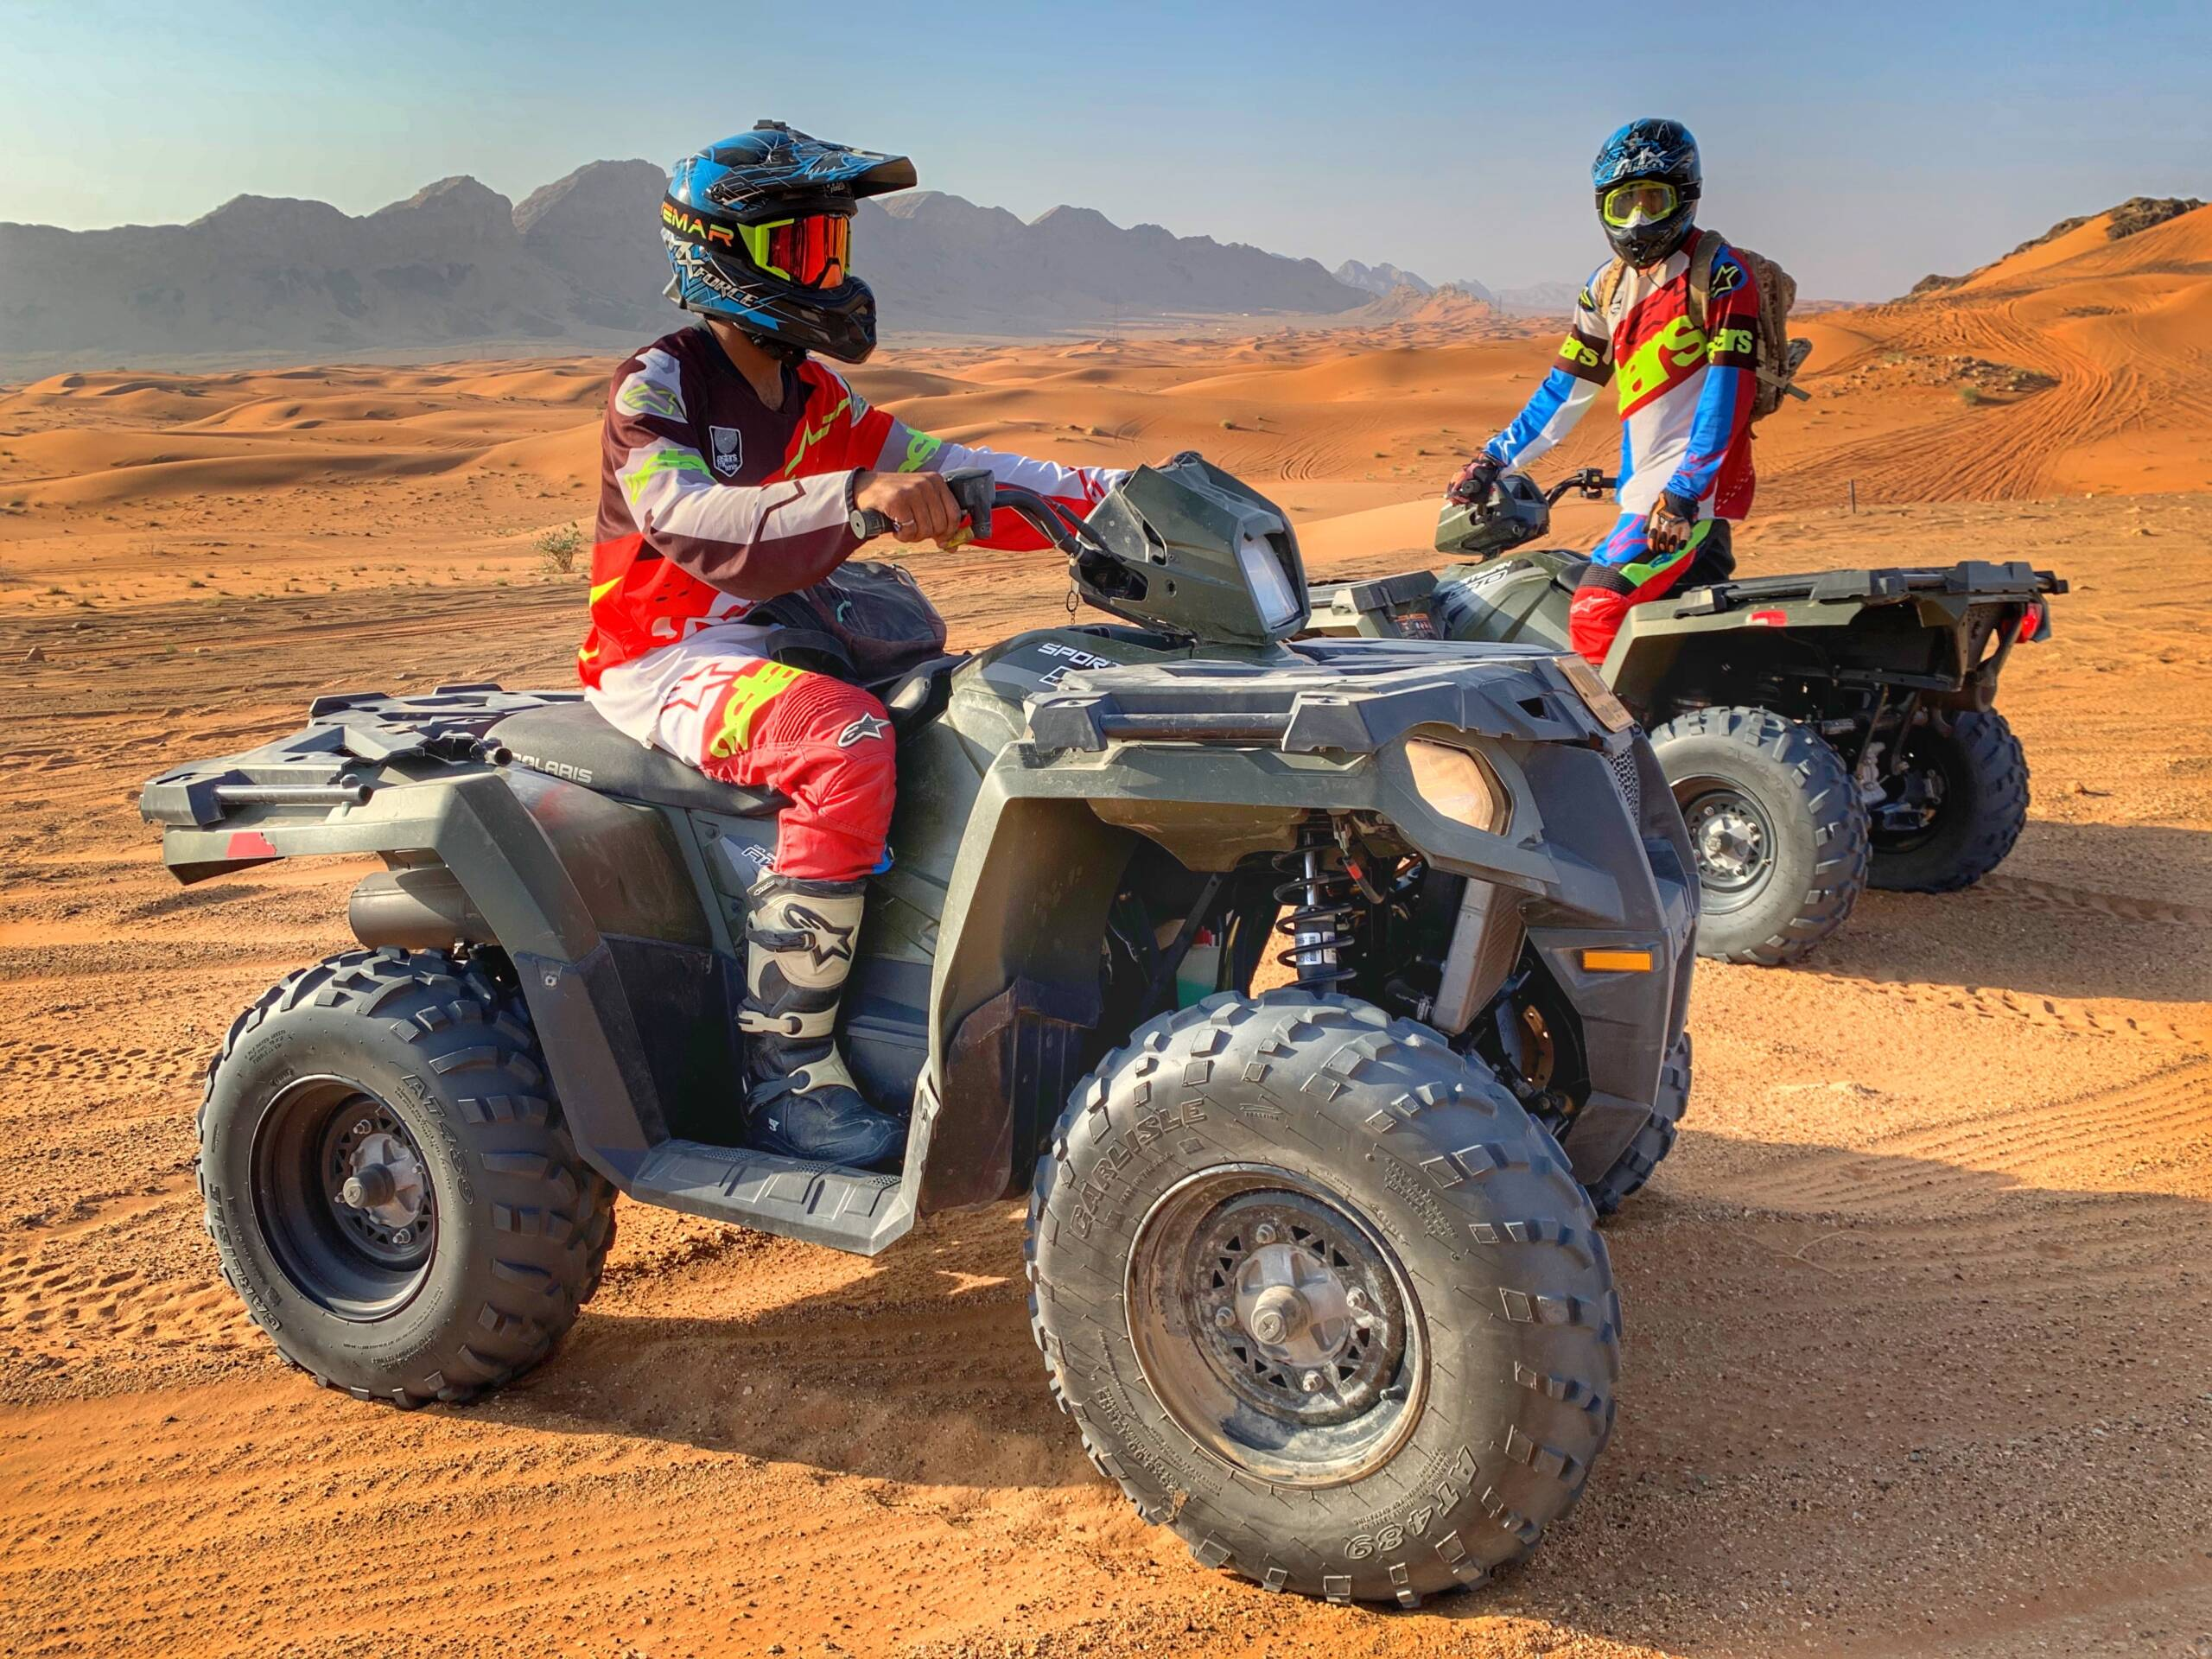 atv-rental-dubai-scaled.